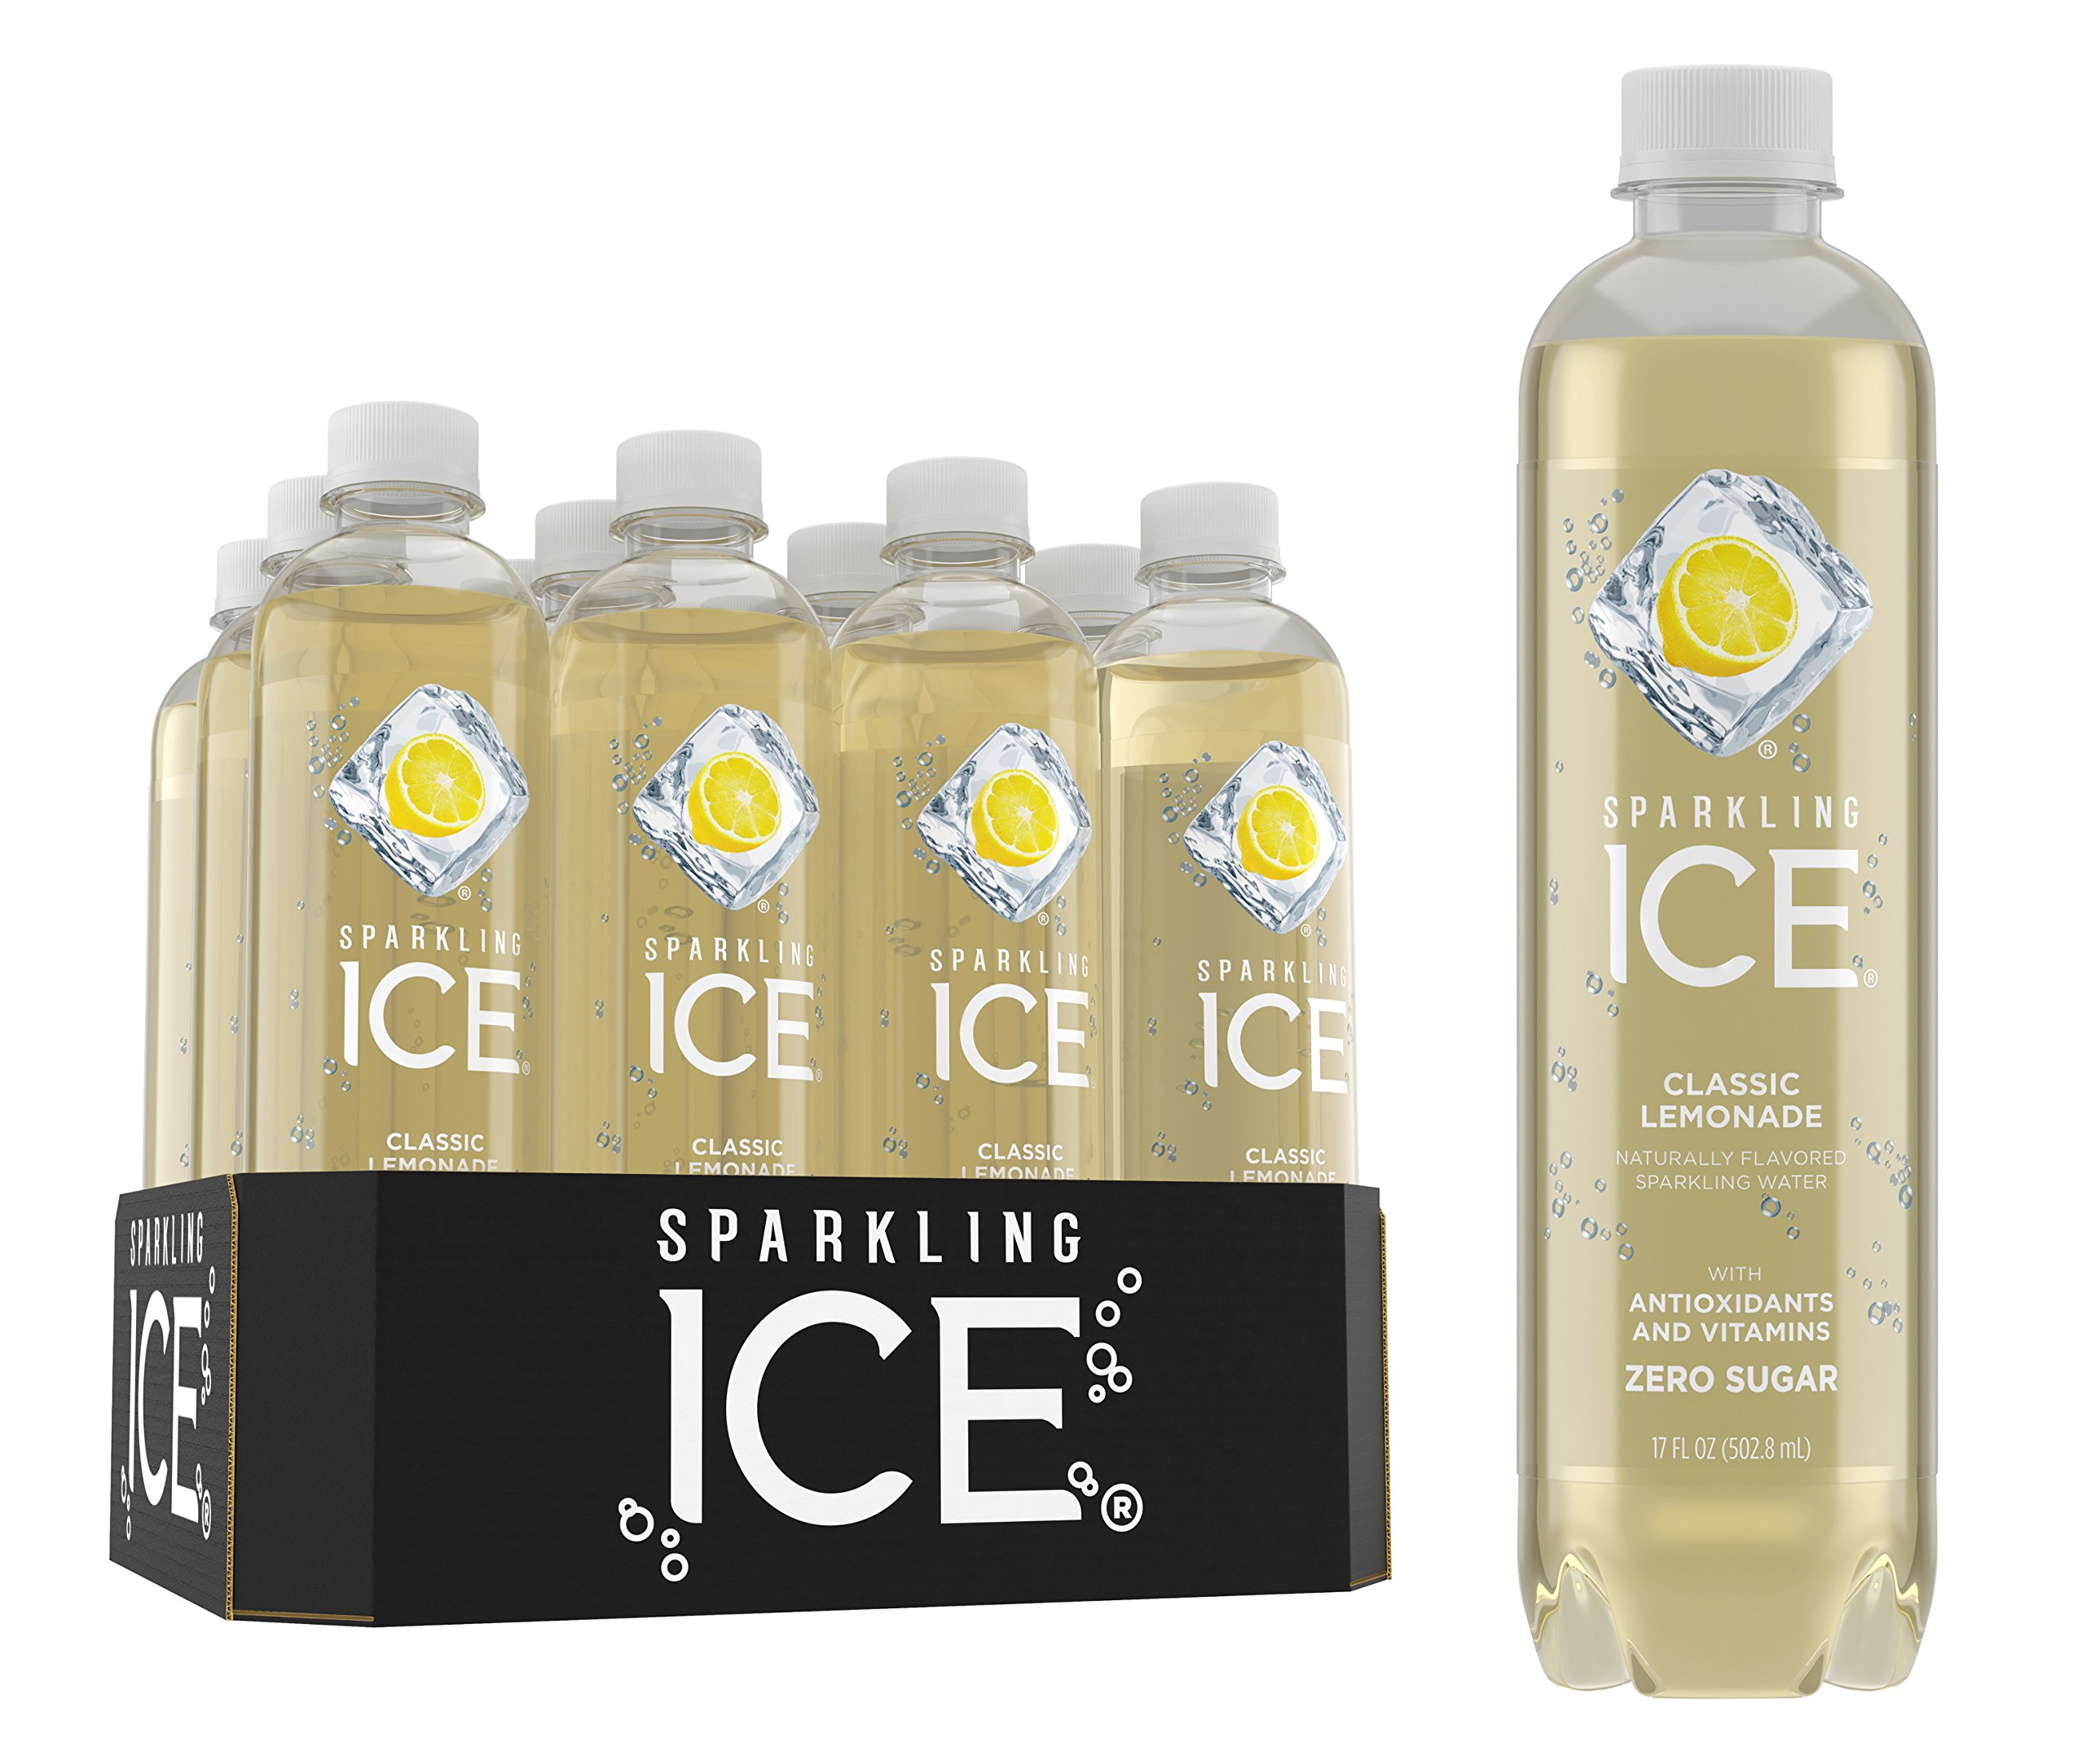 Sparkling Ice Classic Lemonade Sparkling Water, with Antioxidants and Vitamins, Zero Sugar, 17 Ounce Bottles (Pack of 12) by Sparkling ICE